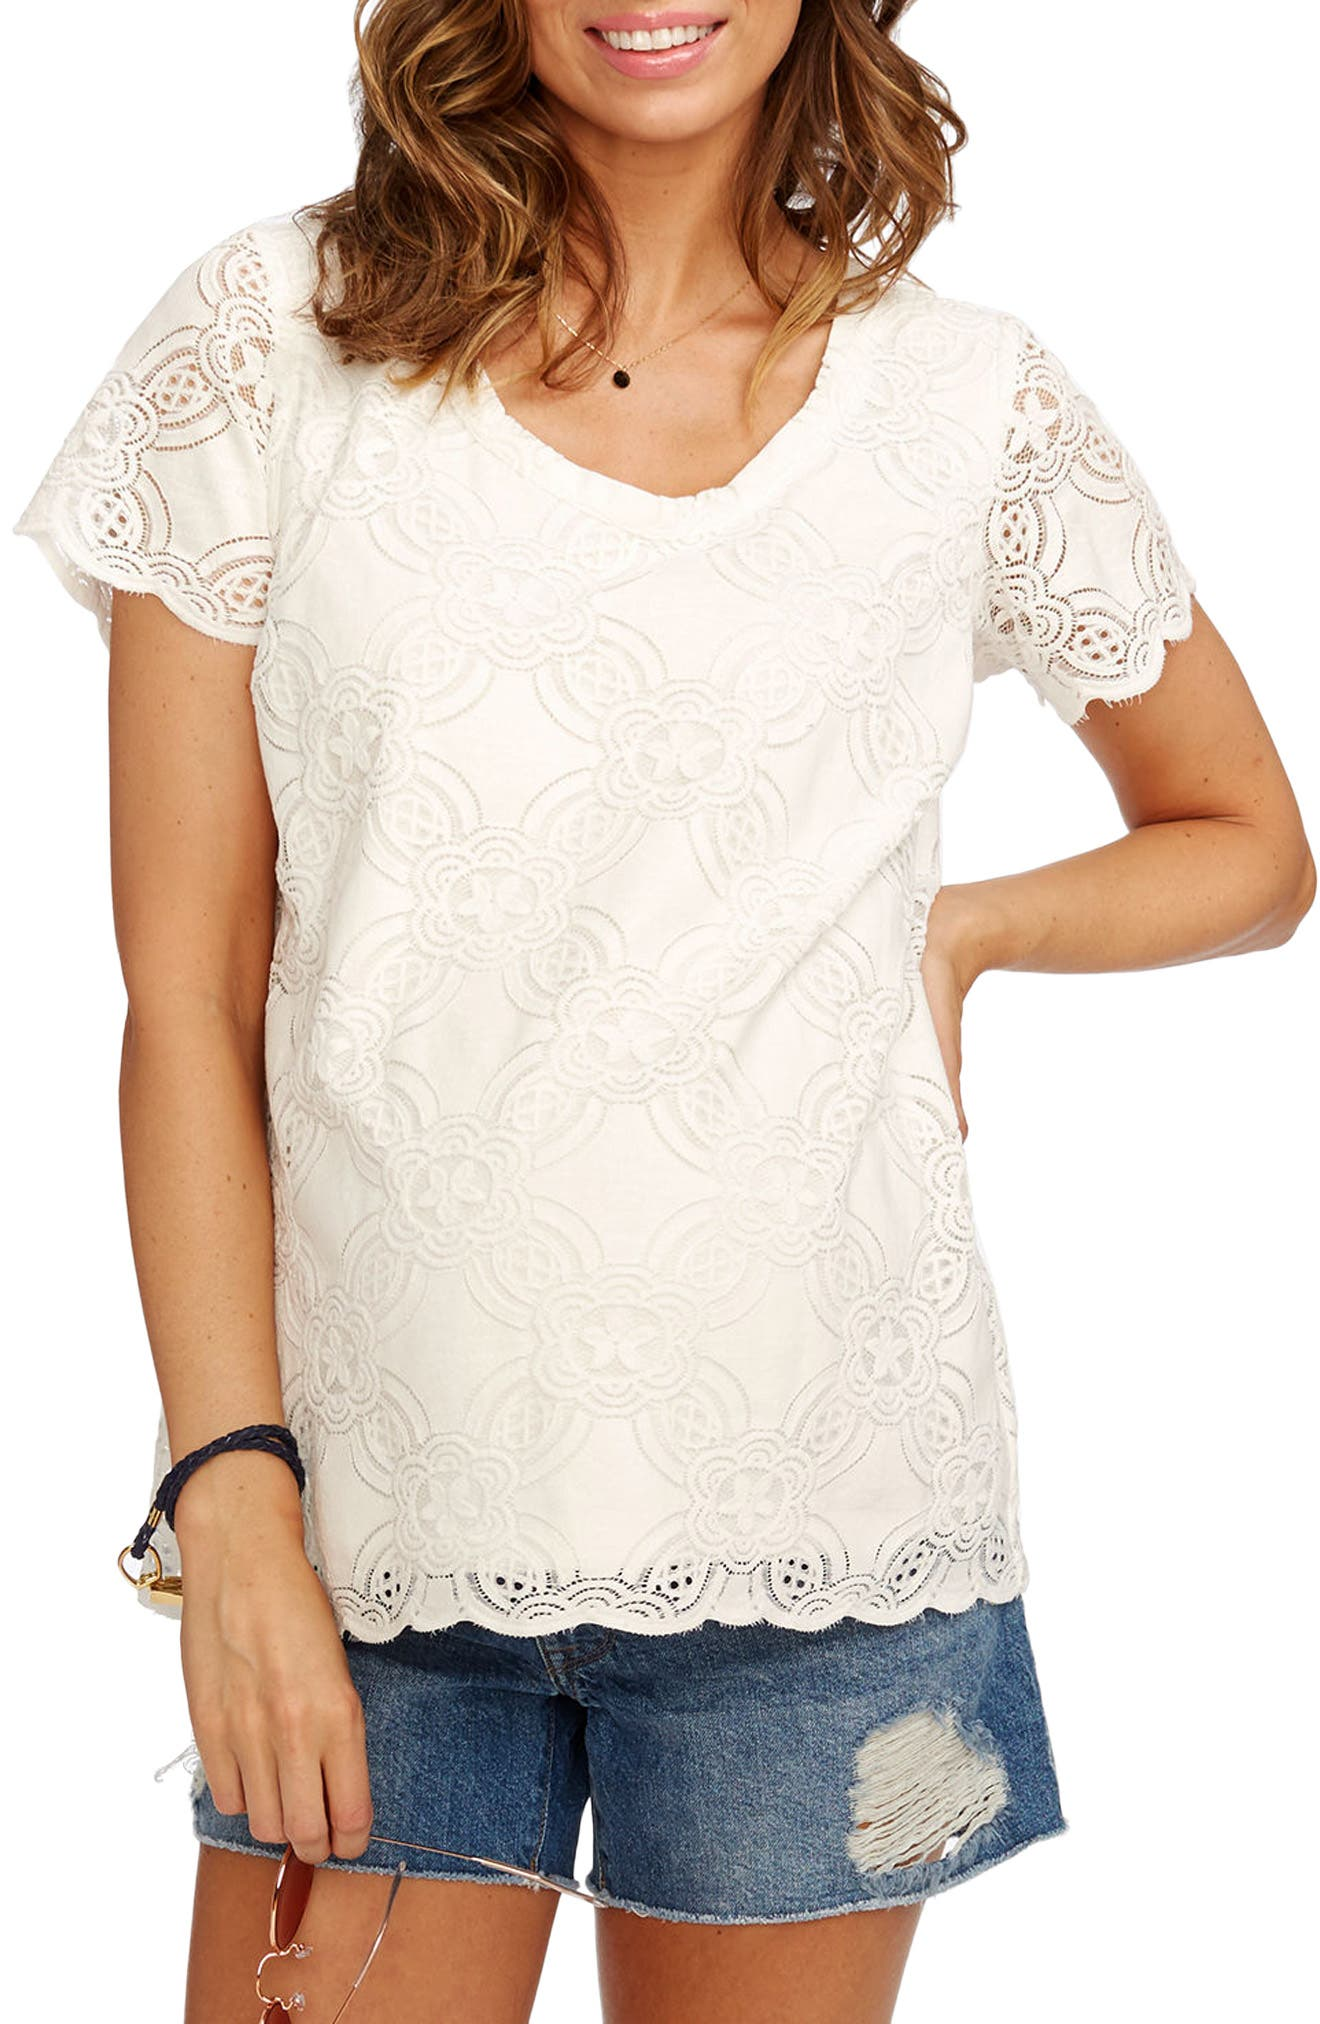 Rosie Pope Edie Maternity Top